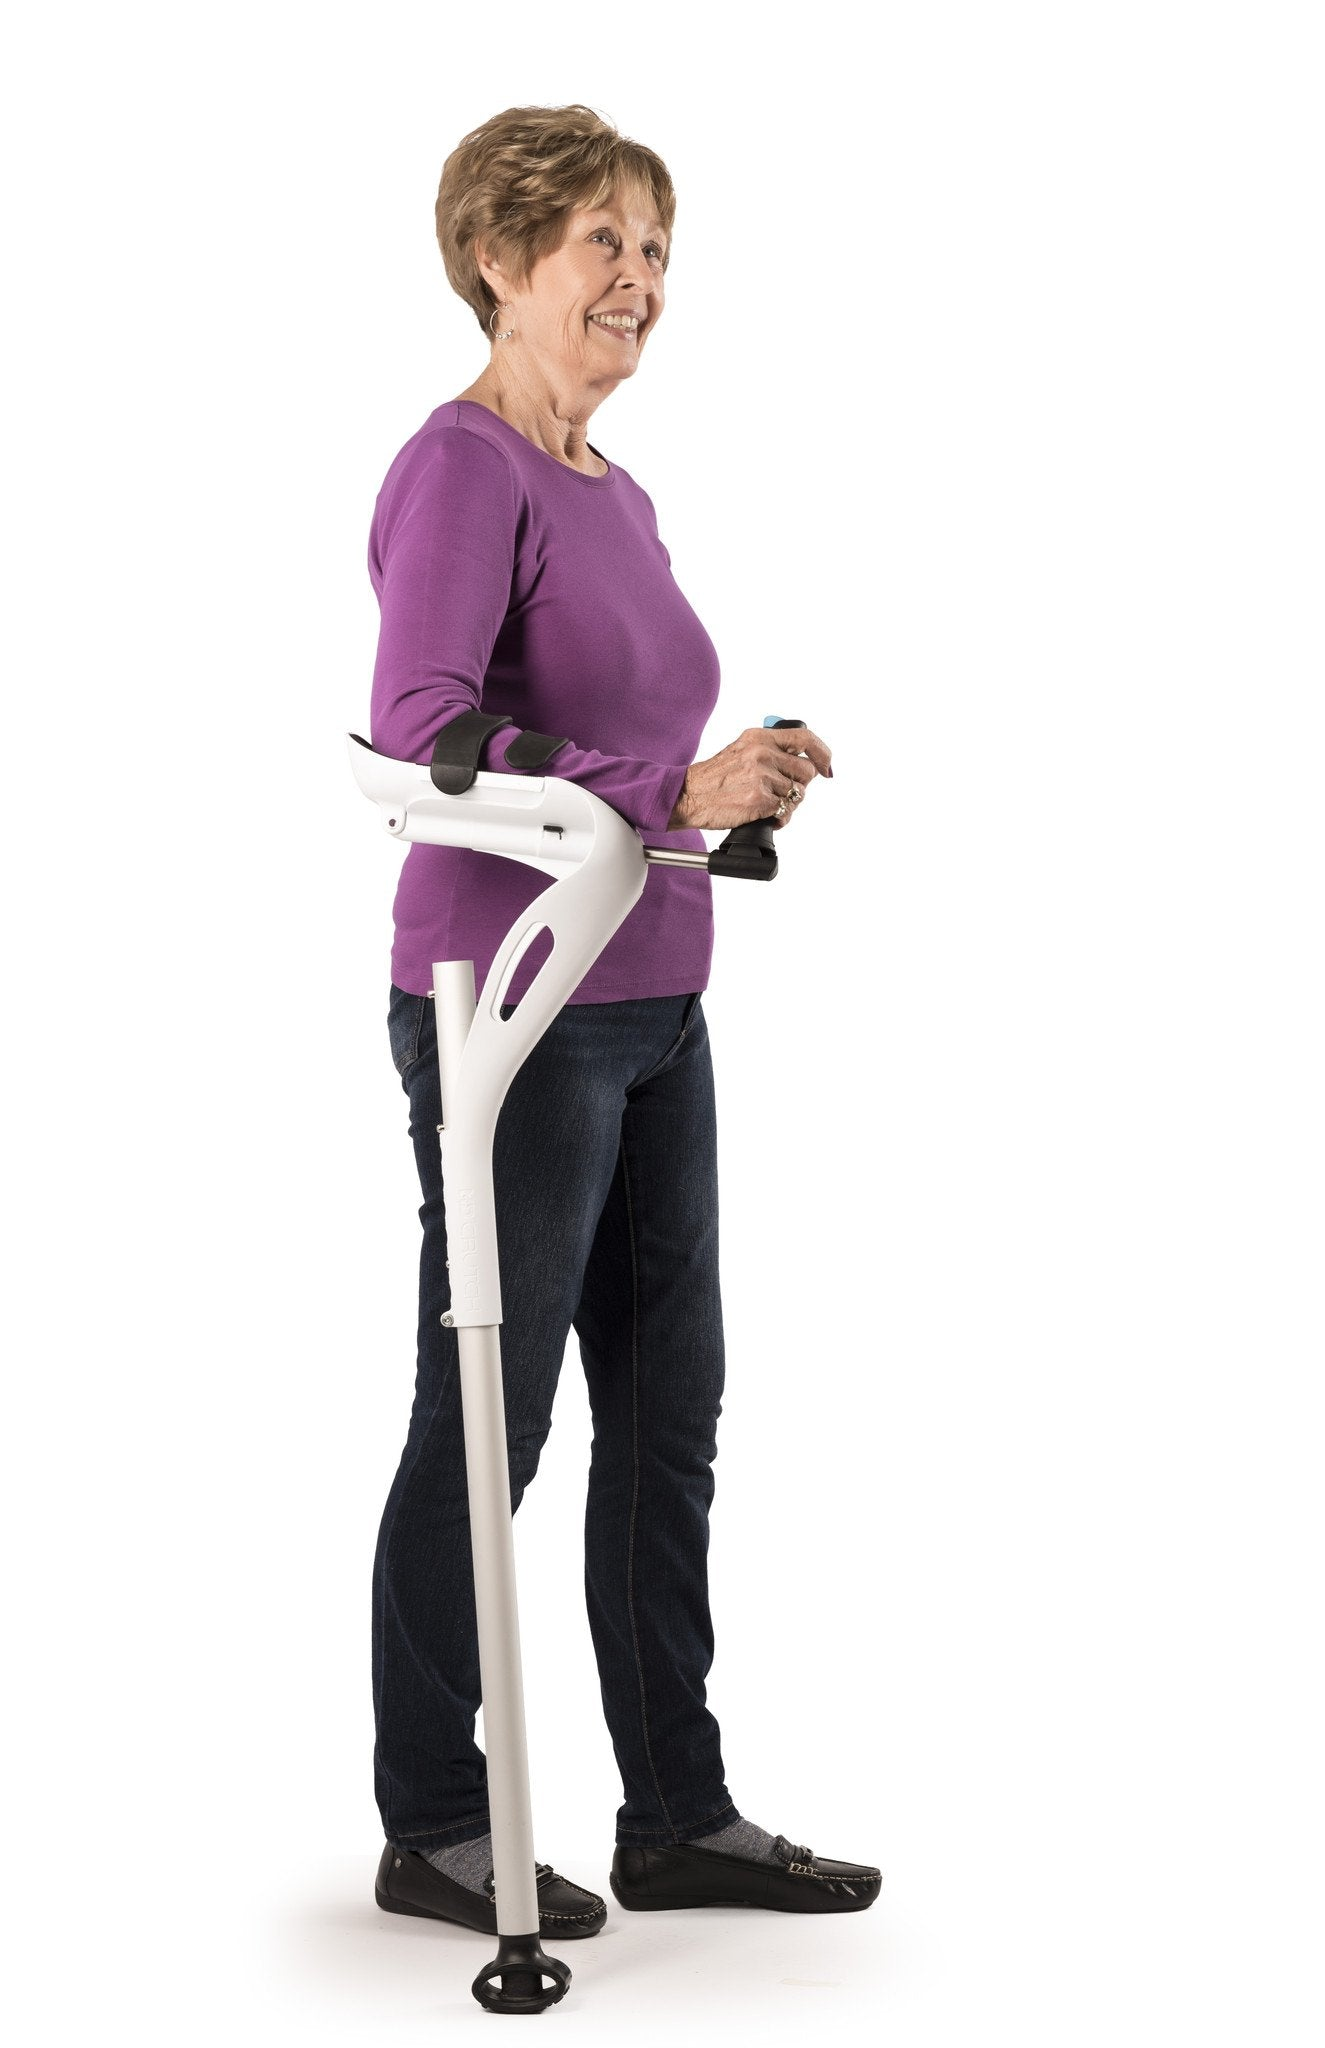 The M+D Crutch is adjustable in both arm length and height from 4'11